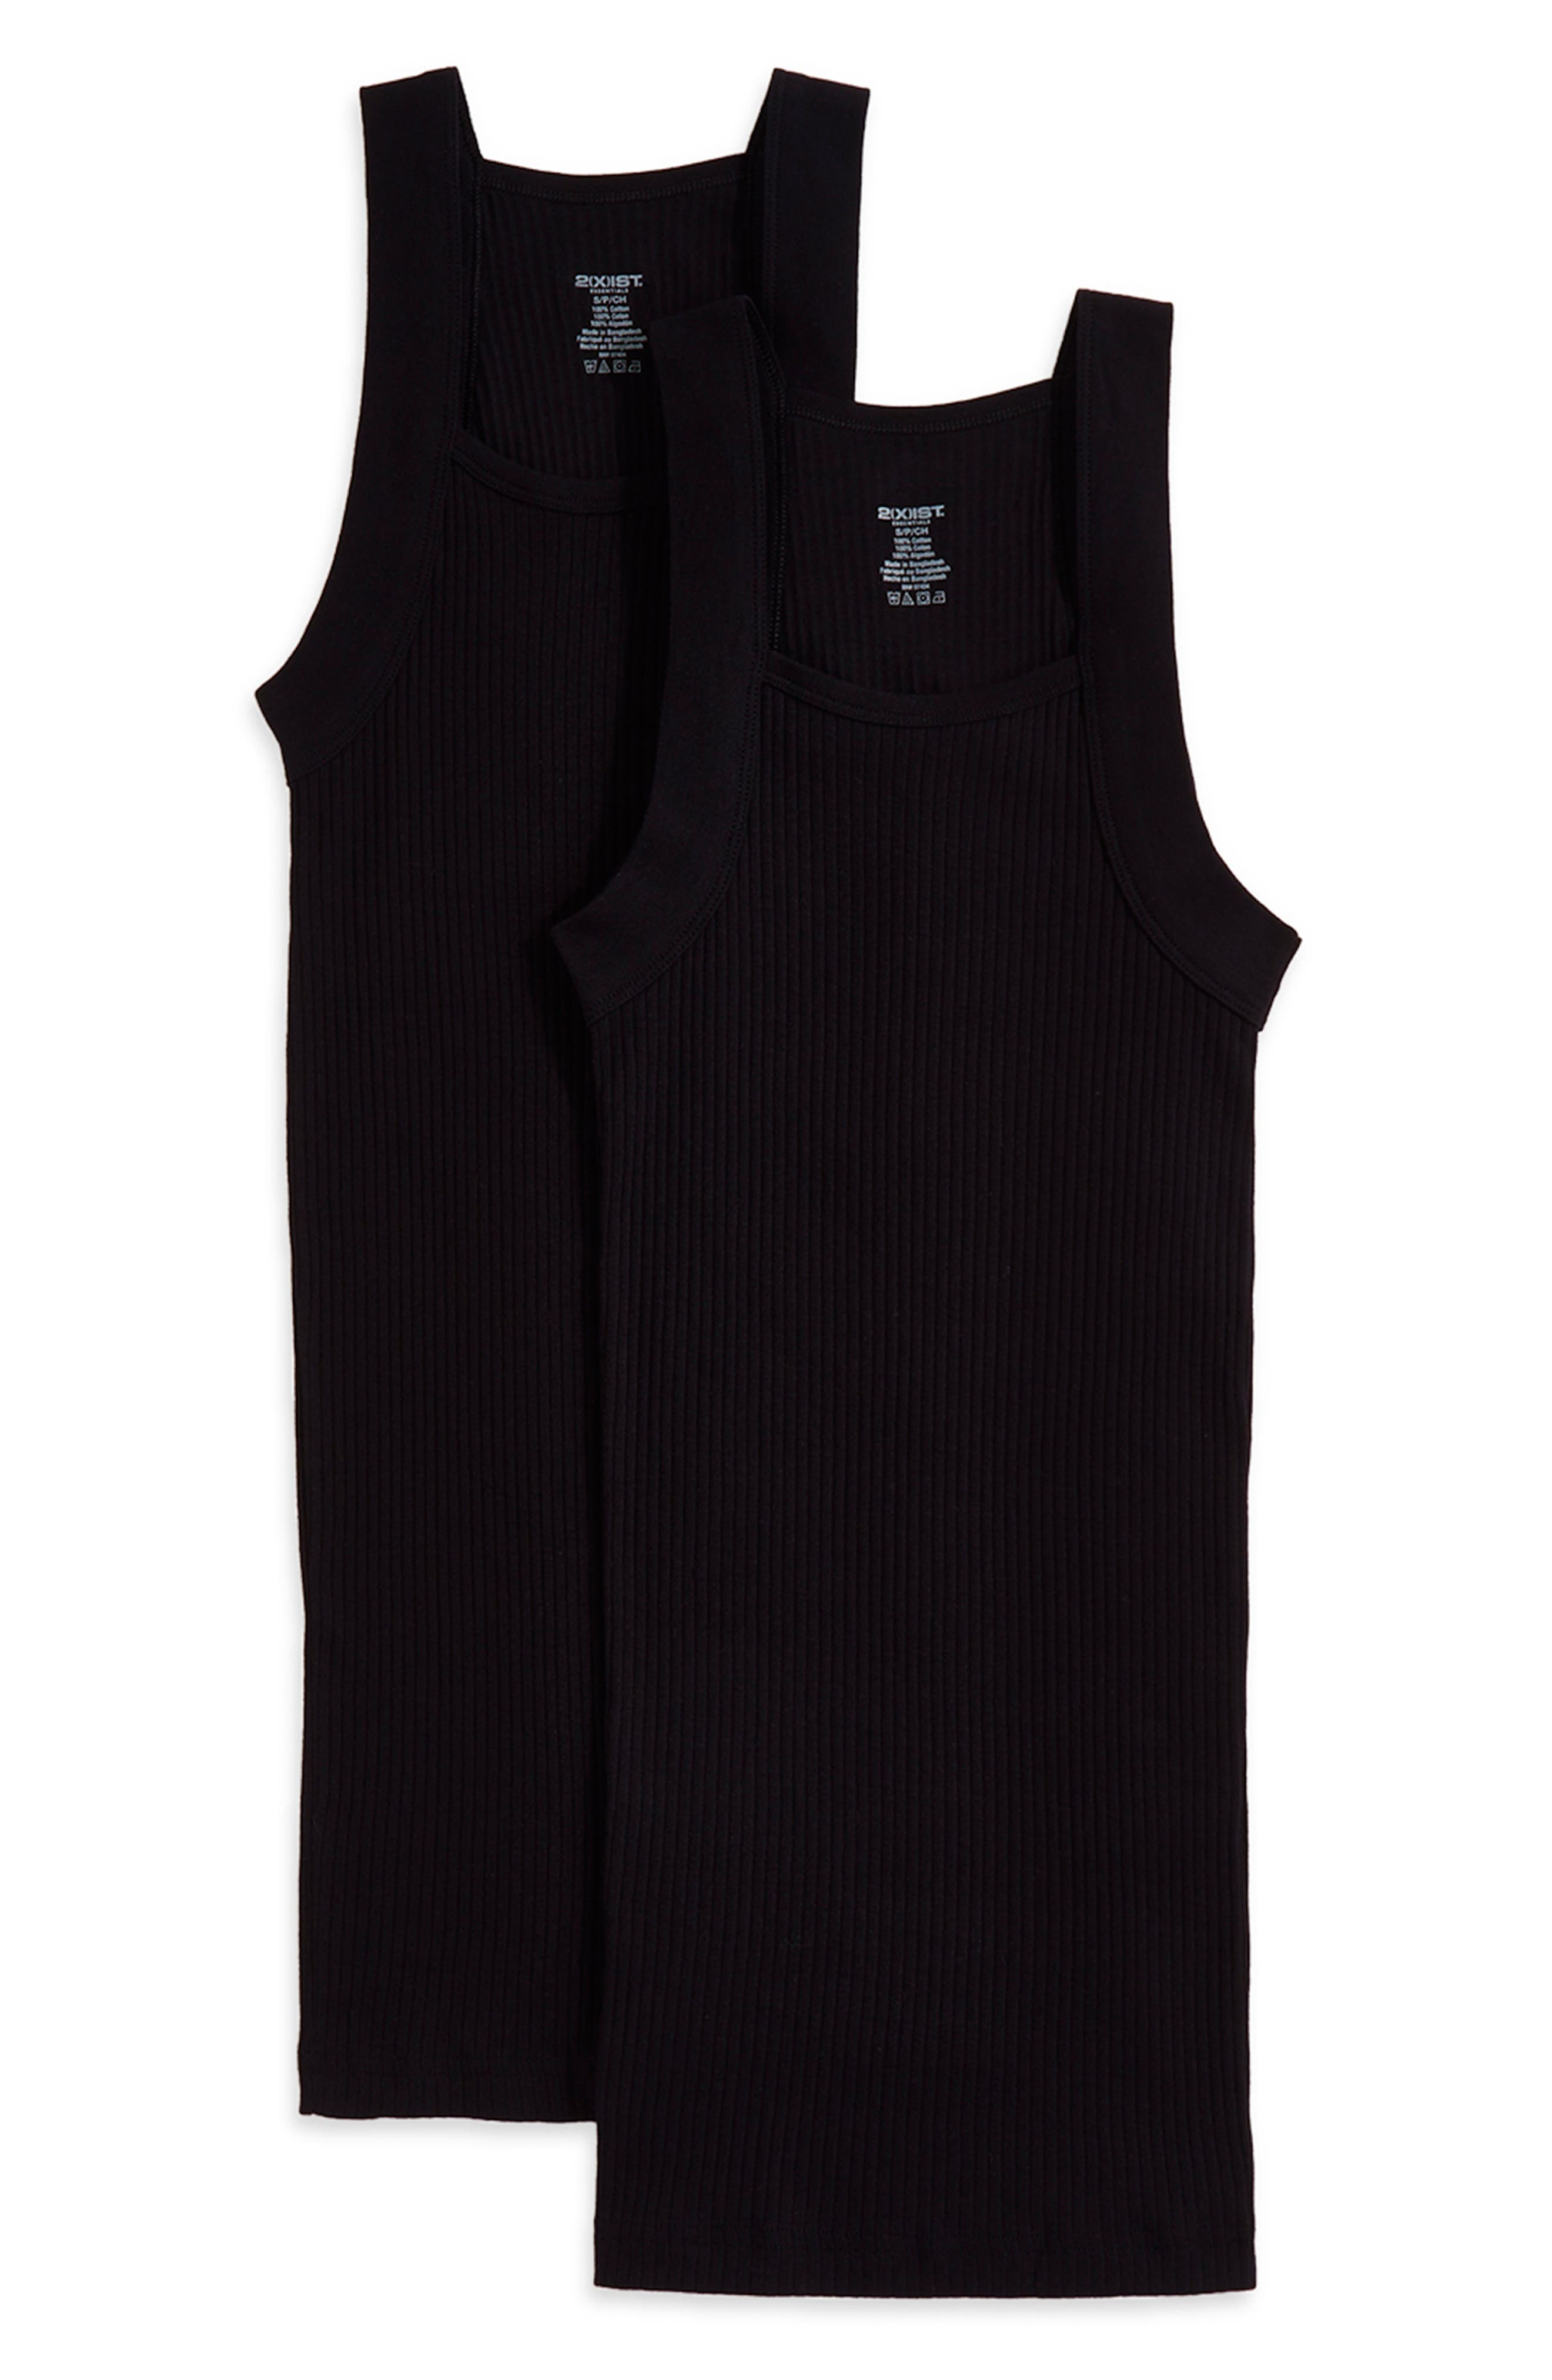 2(X)IST 2-Pack Cotton Tank Top, Main, color, BLACK NEW LOGO